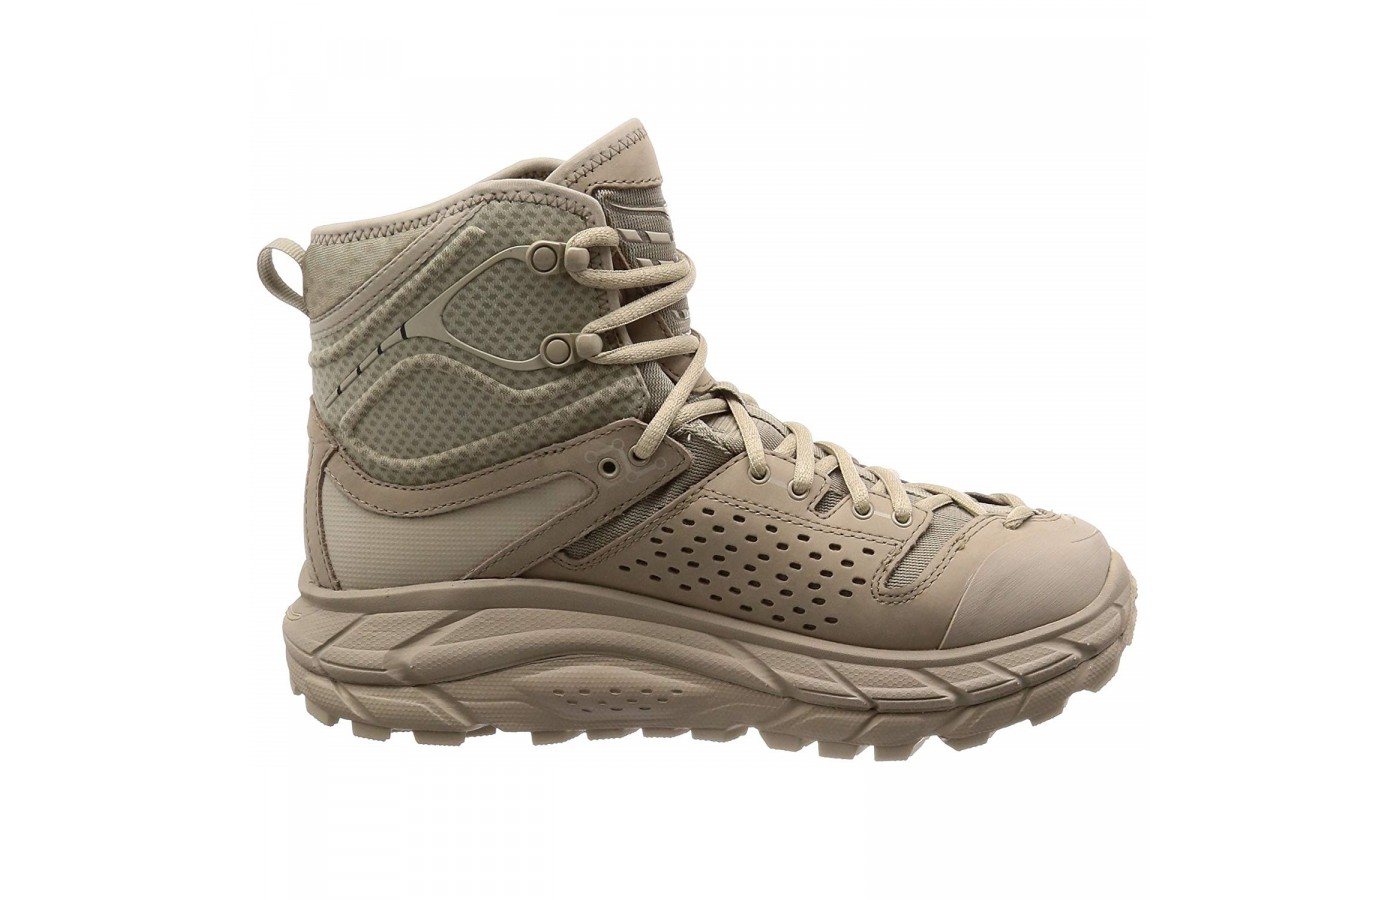 The Hoka One One Tor Ultra Hi WP offer a unique design for fashion-forward individuals.